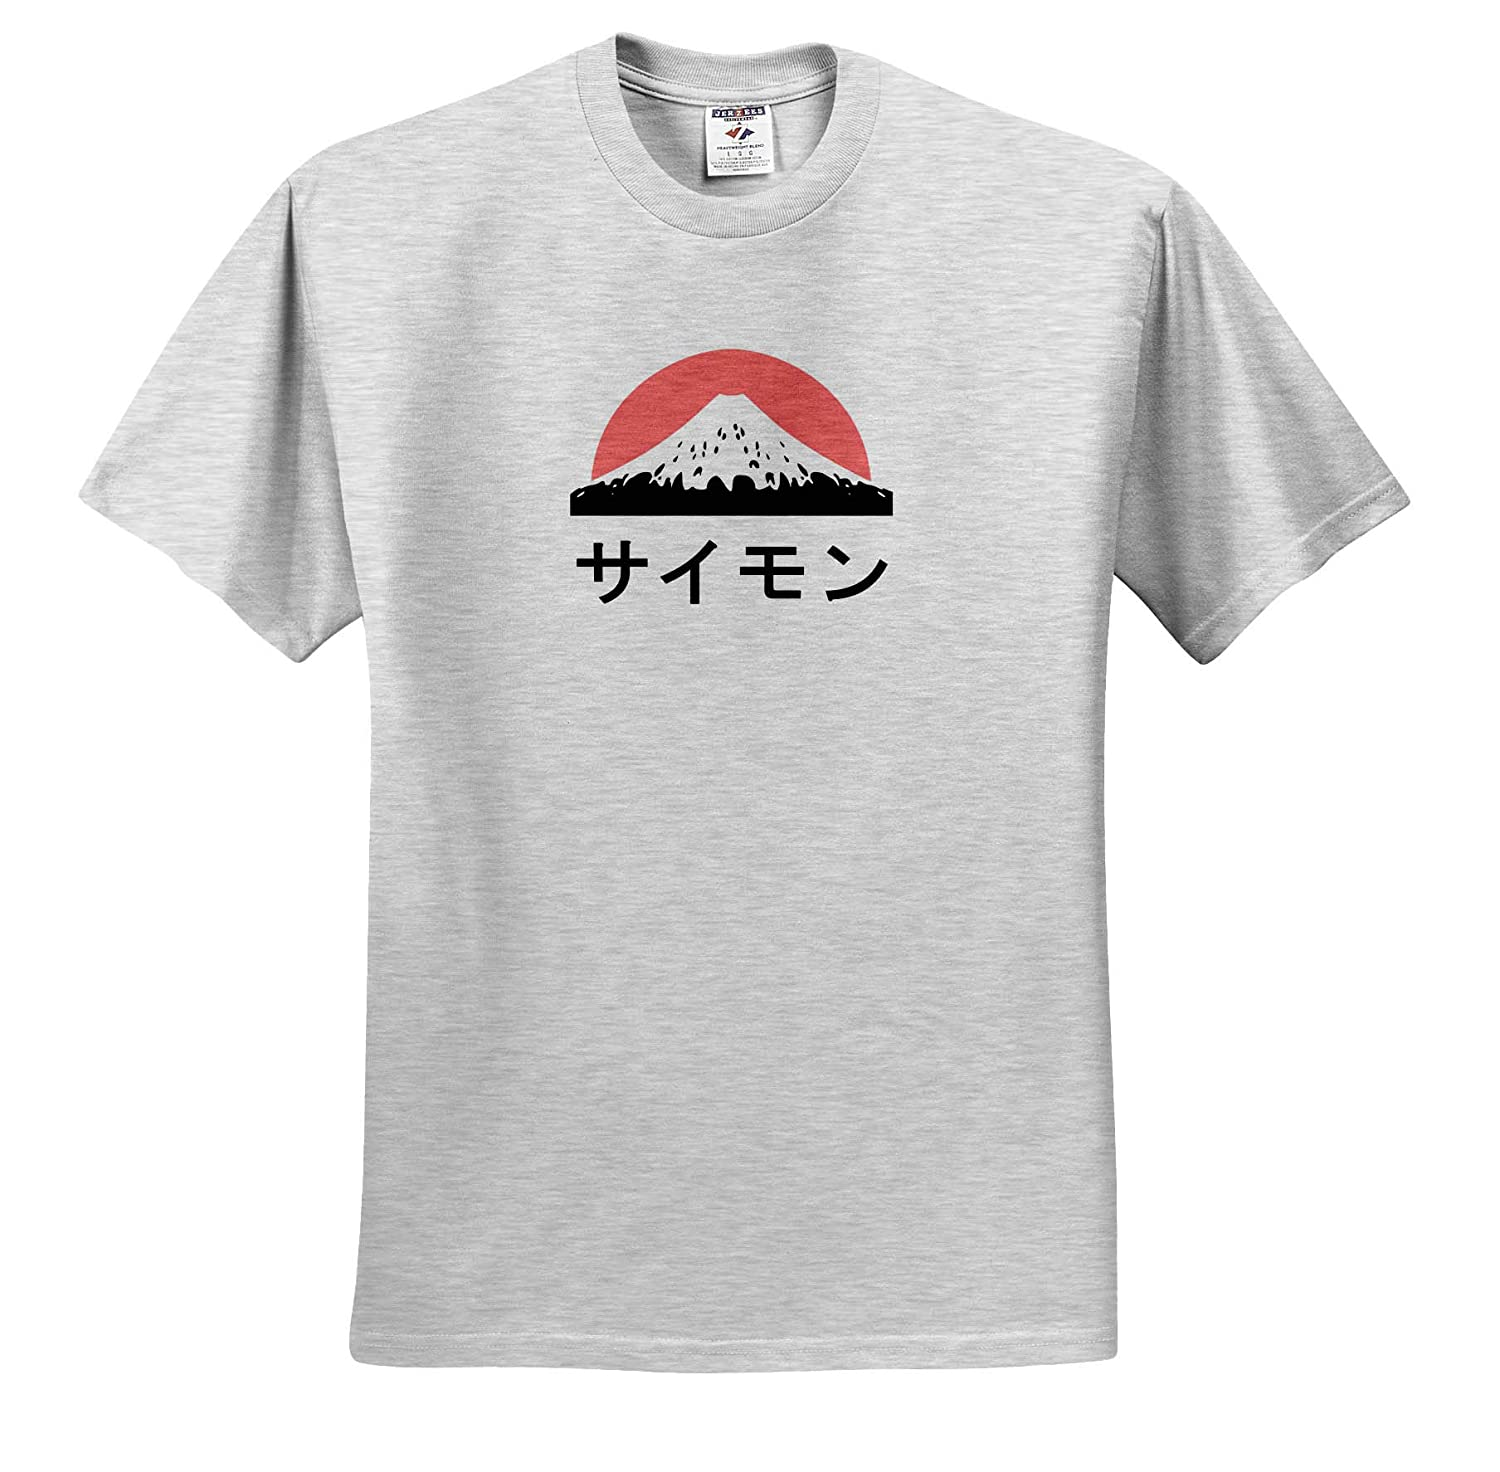 Name in Japanese Adult T-Shirt XL ts/_320624 3dRose InspirationzStore Simon in Japanese Letters